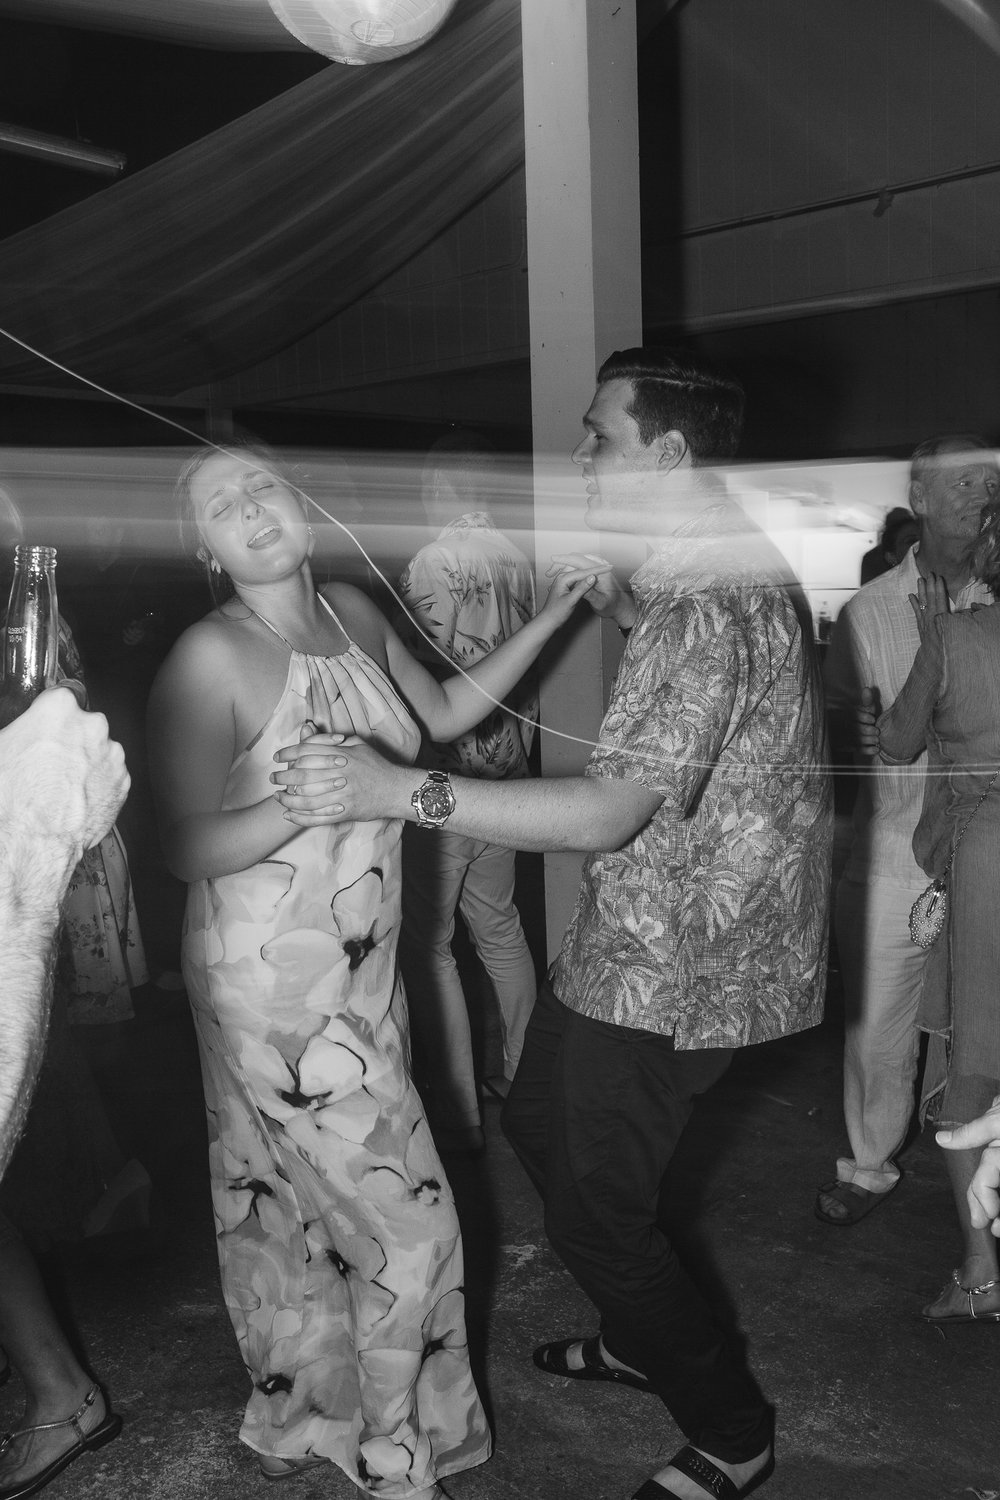 I'm sure one of Lucy's most memorable moments of her wedding was seeing everyone have such an amazing time on the dance floor.